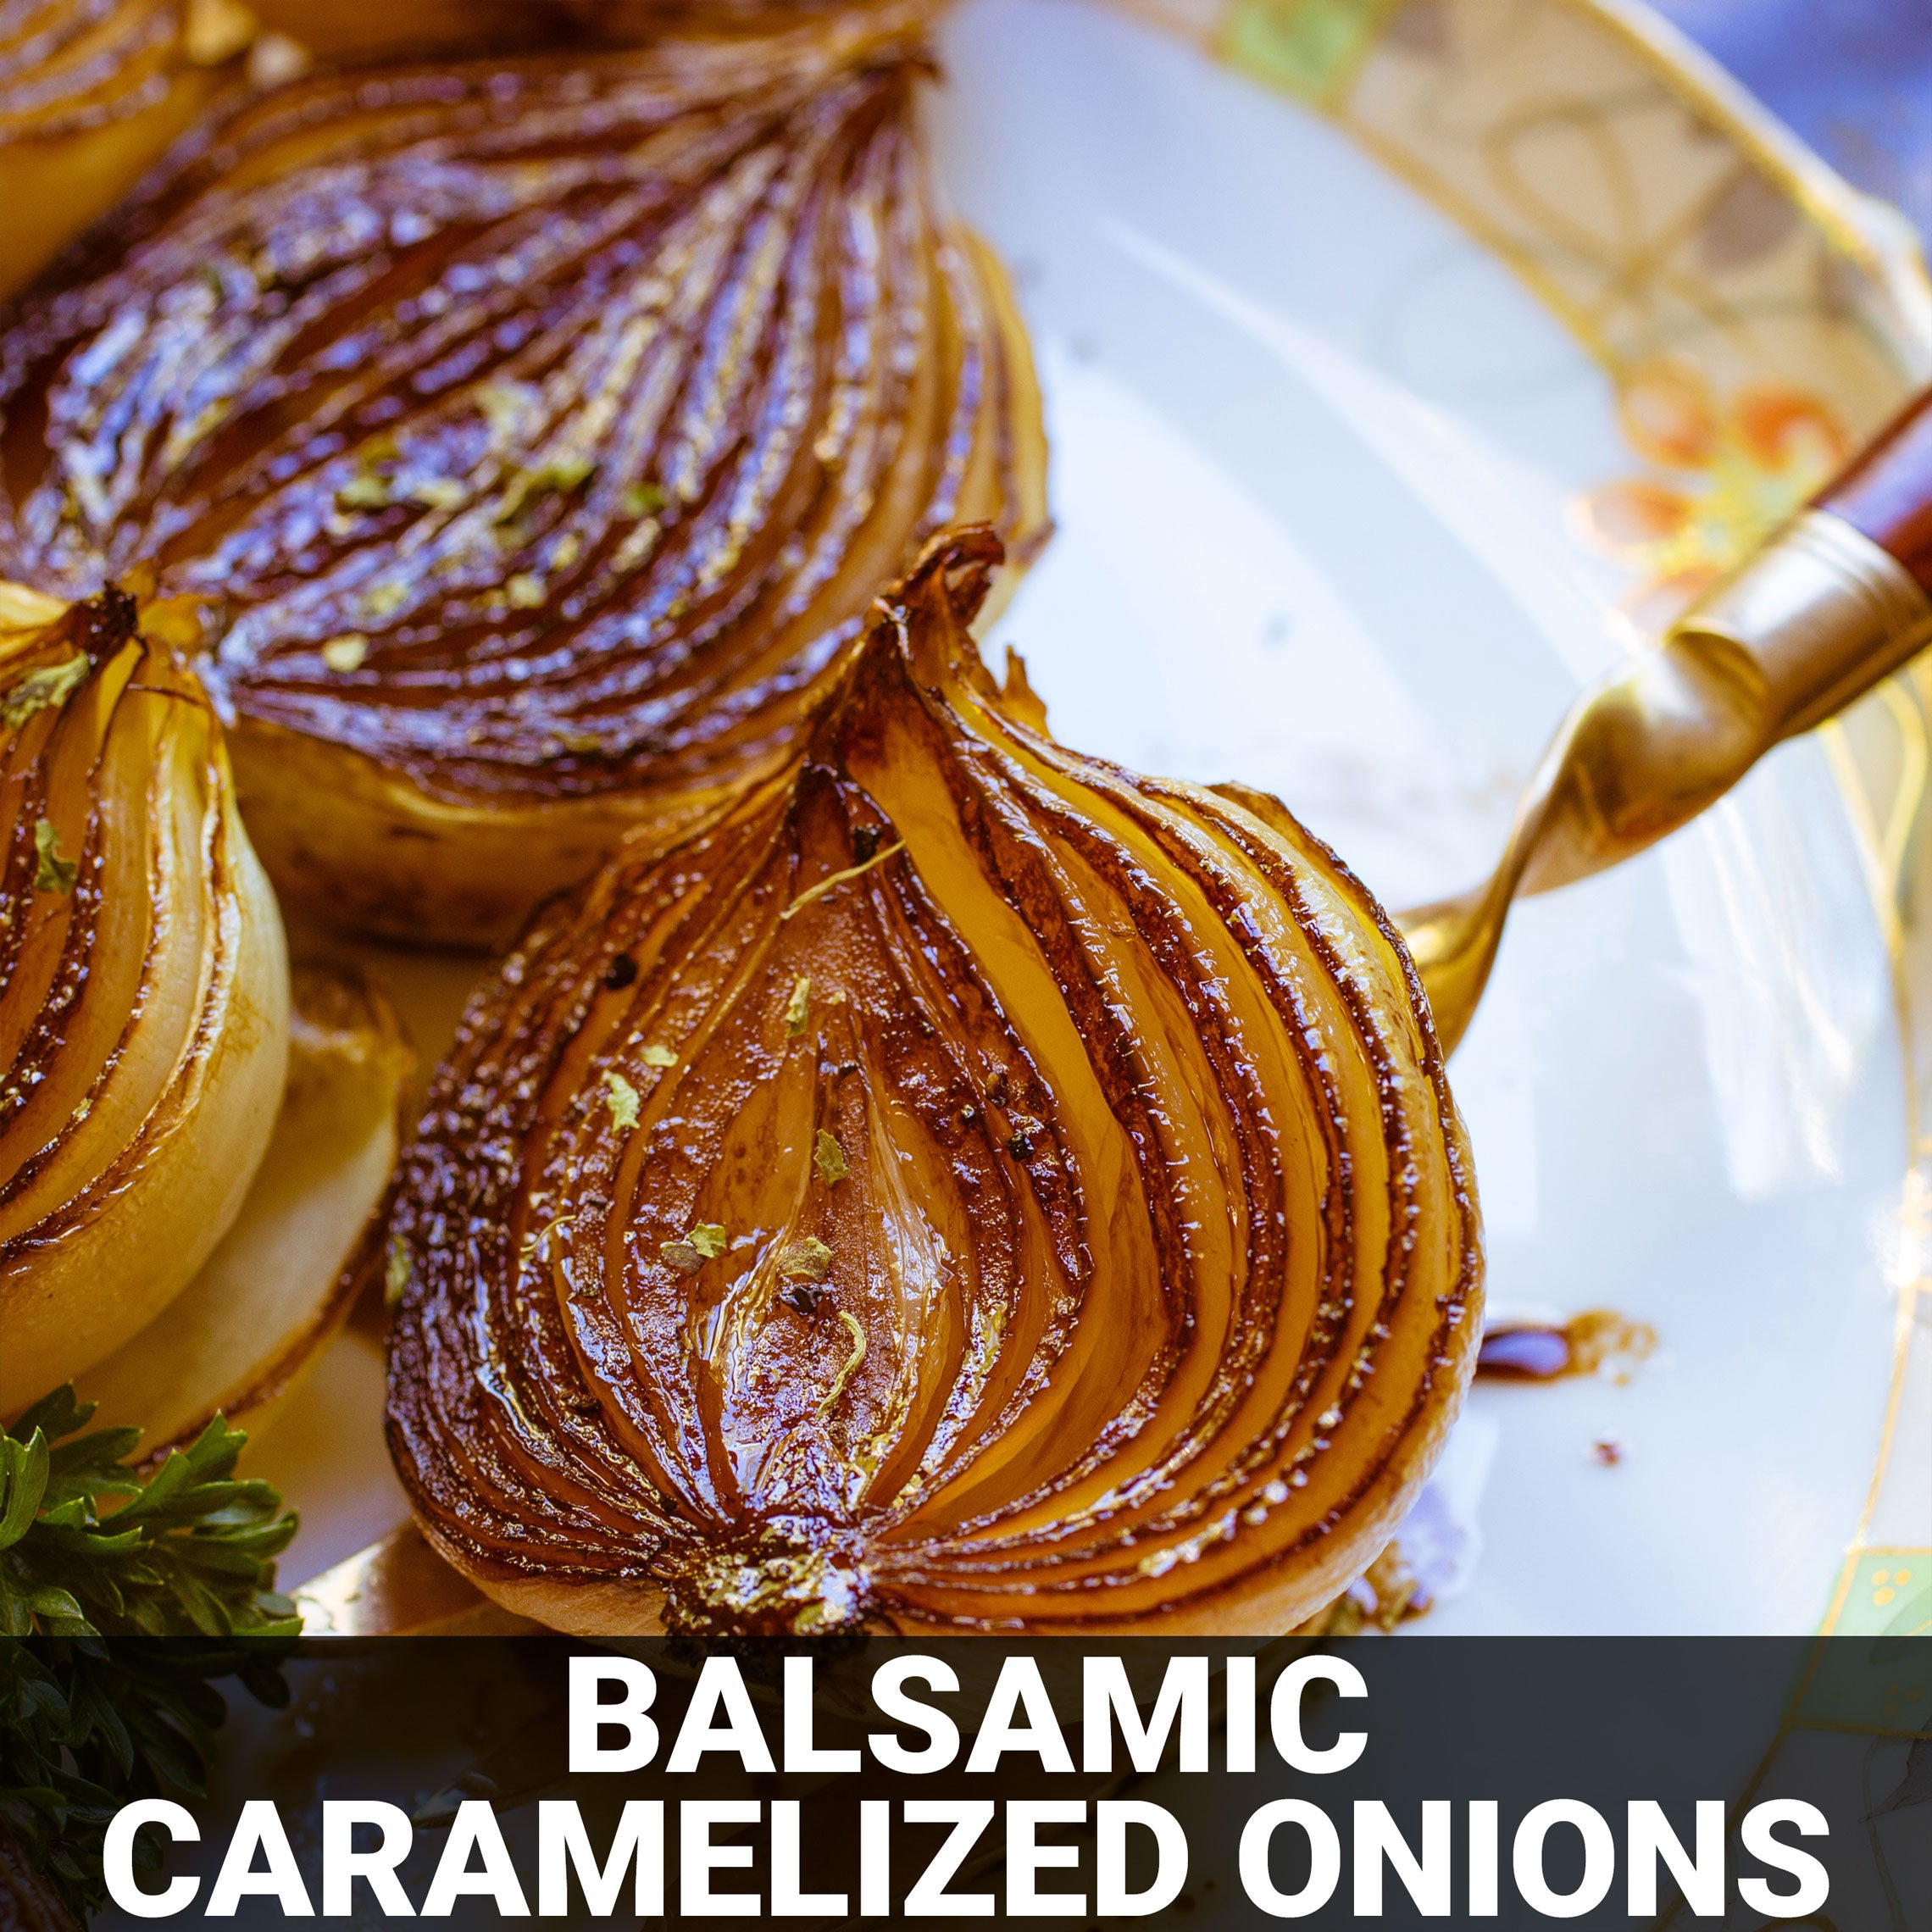 Balsamic Caramelized Onions Recipe - Foods Alive